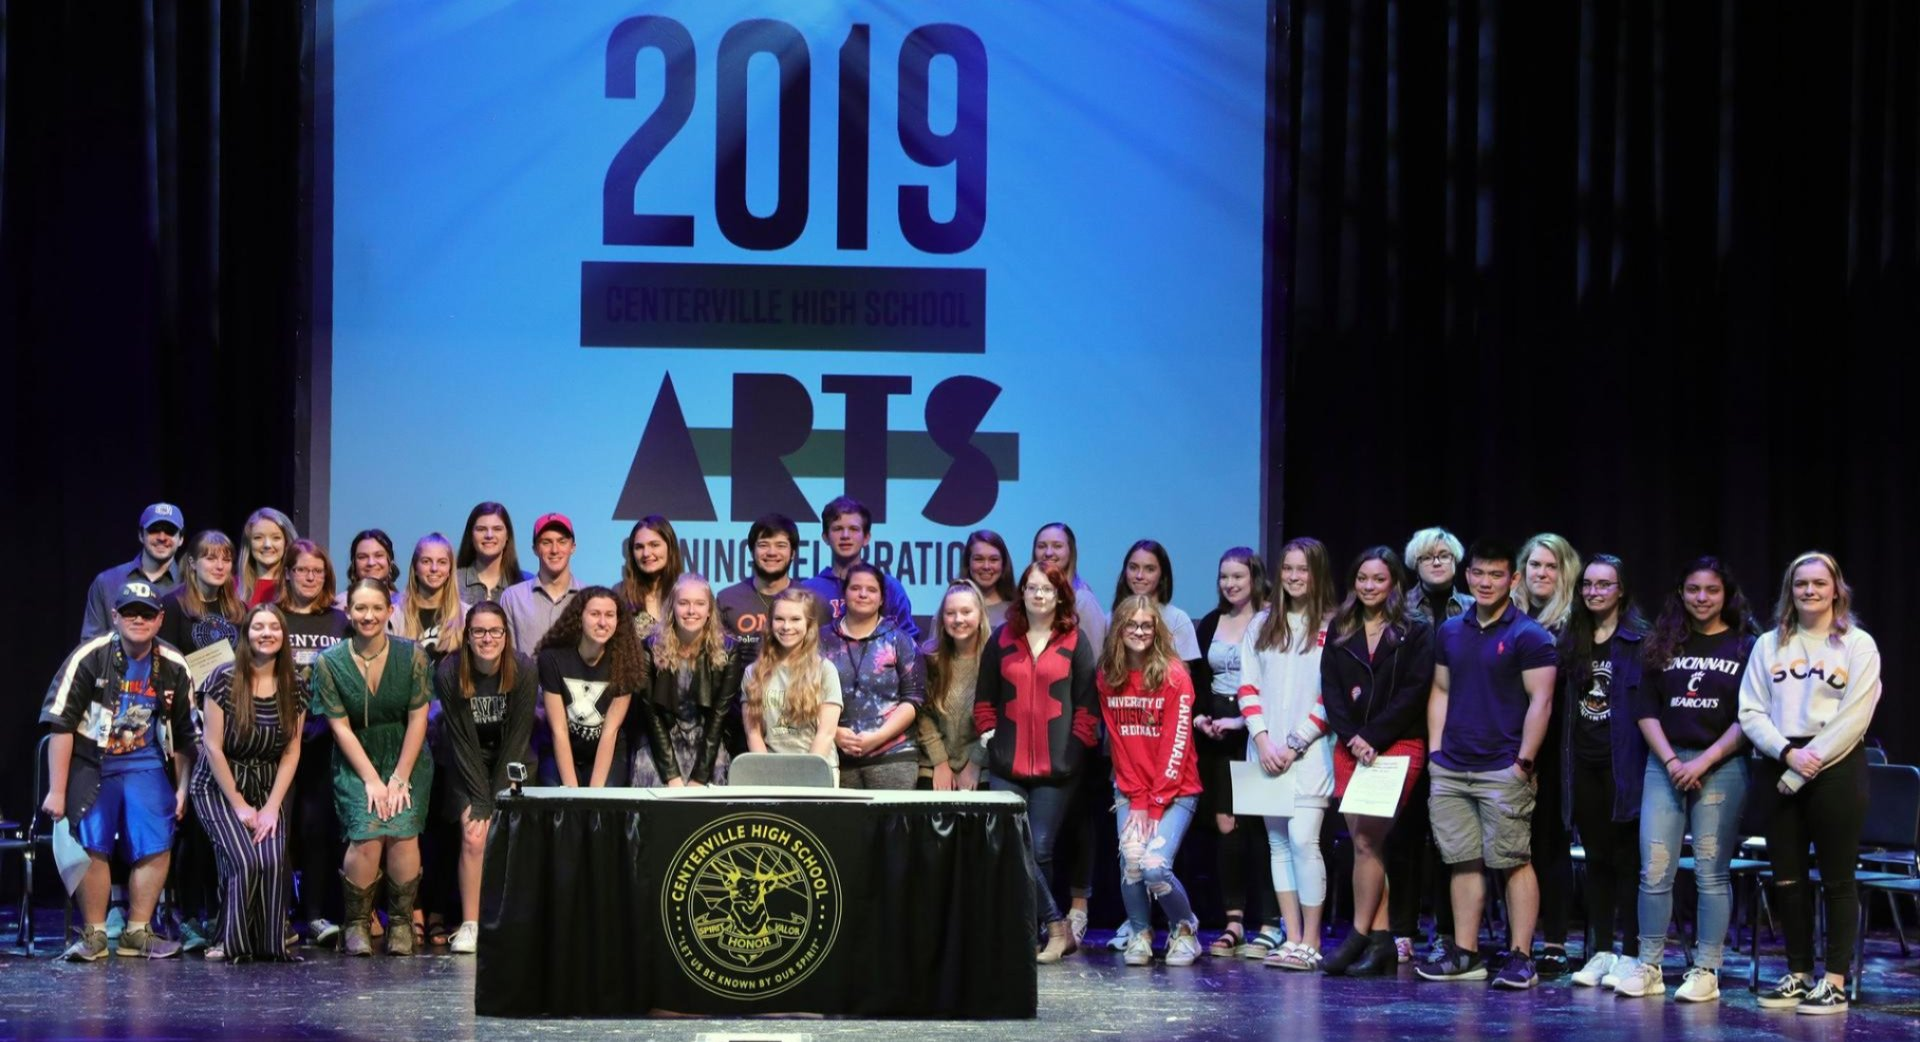 Image of large group of students on stage with sign that reads 2019 Arts Signing Celebration